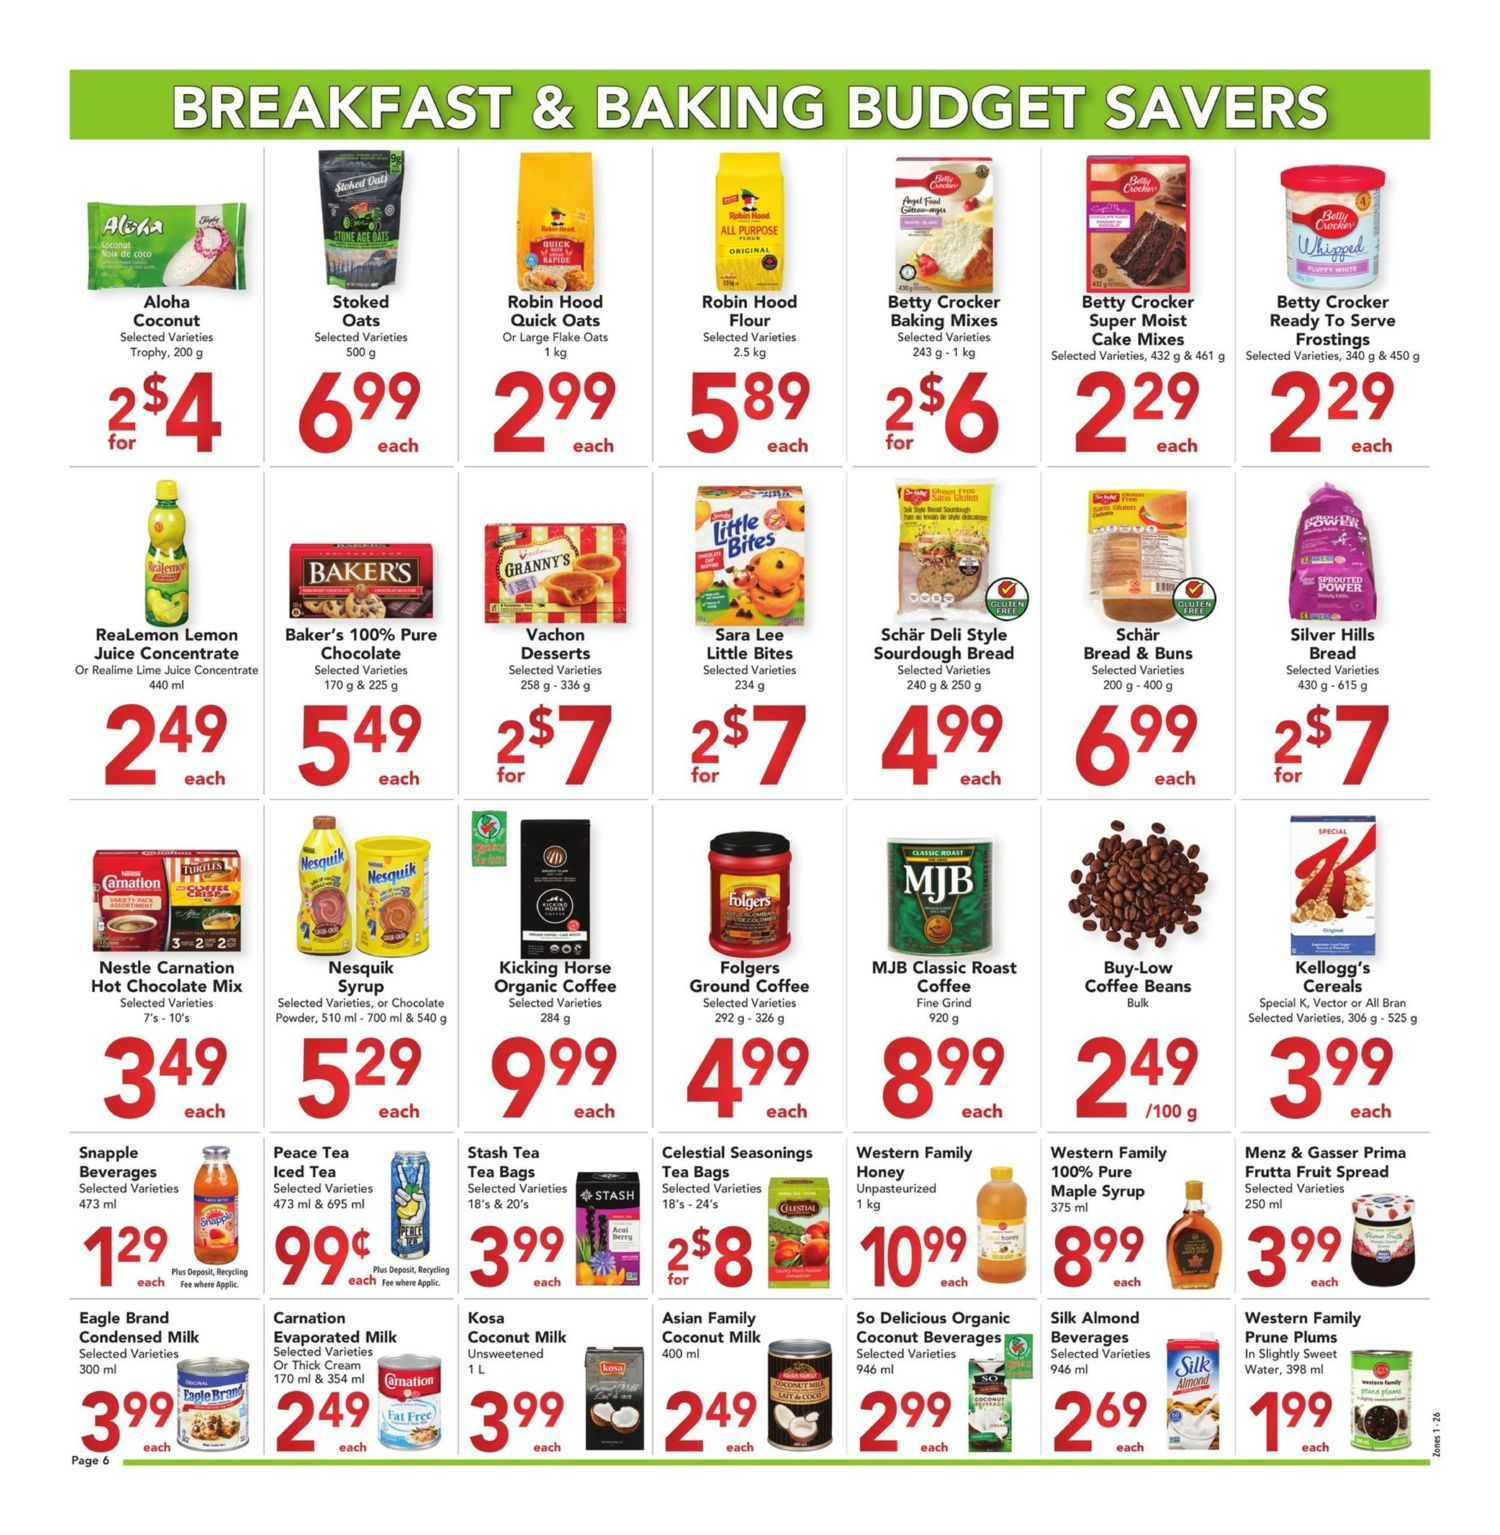 Buy-Low Foods - Budget Savers - Page 6